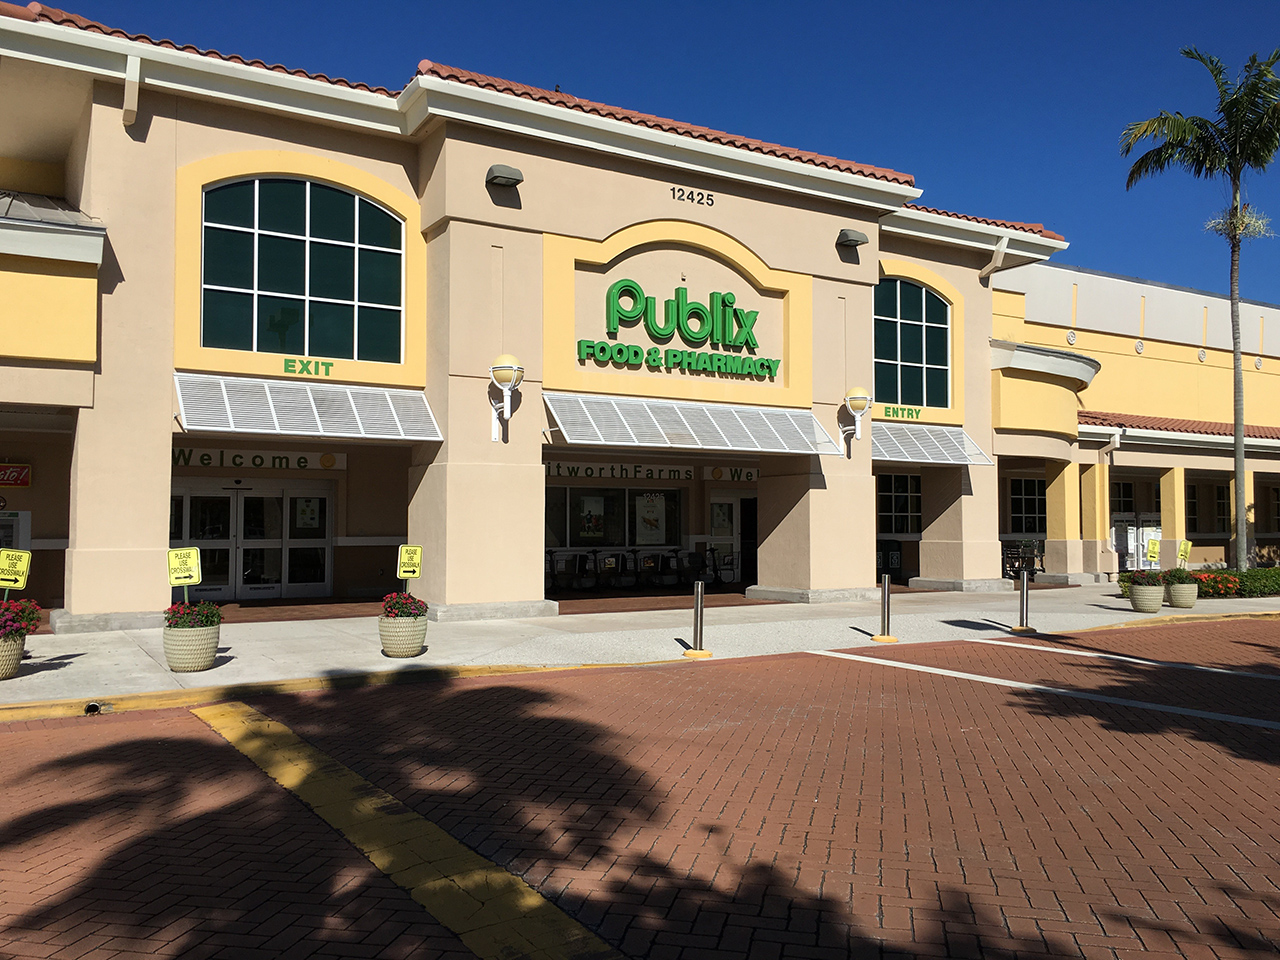 MMG and Global Acquire a Distressed 88,424 Square-Foot Publix-Anchored Center in Palm Beach County, FL